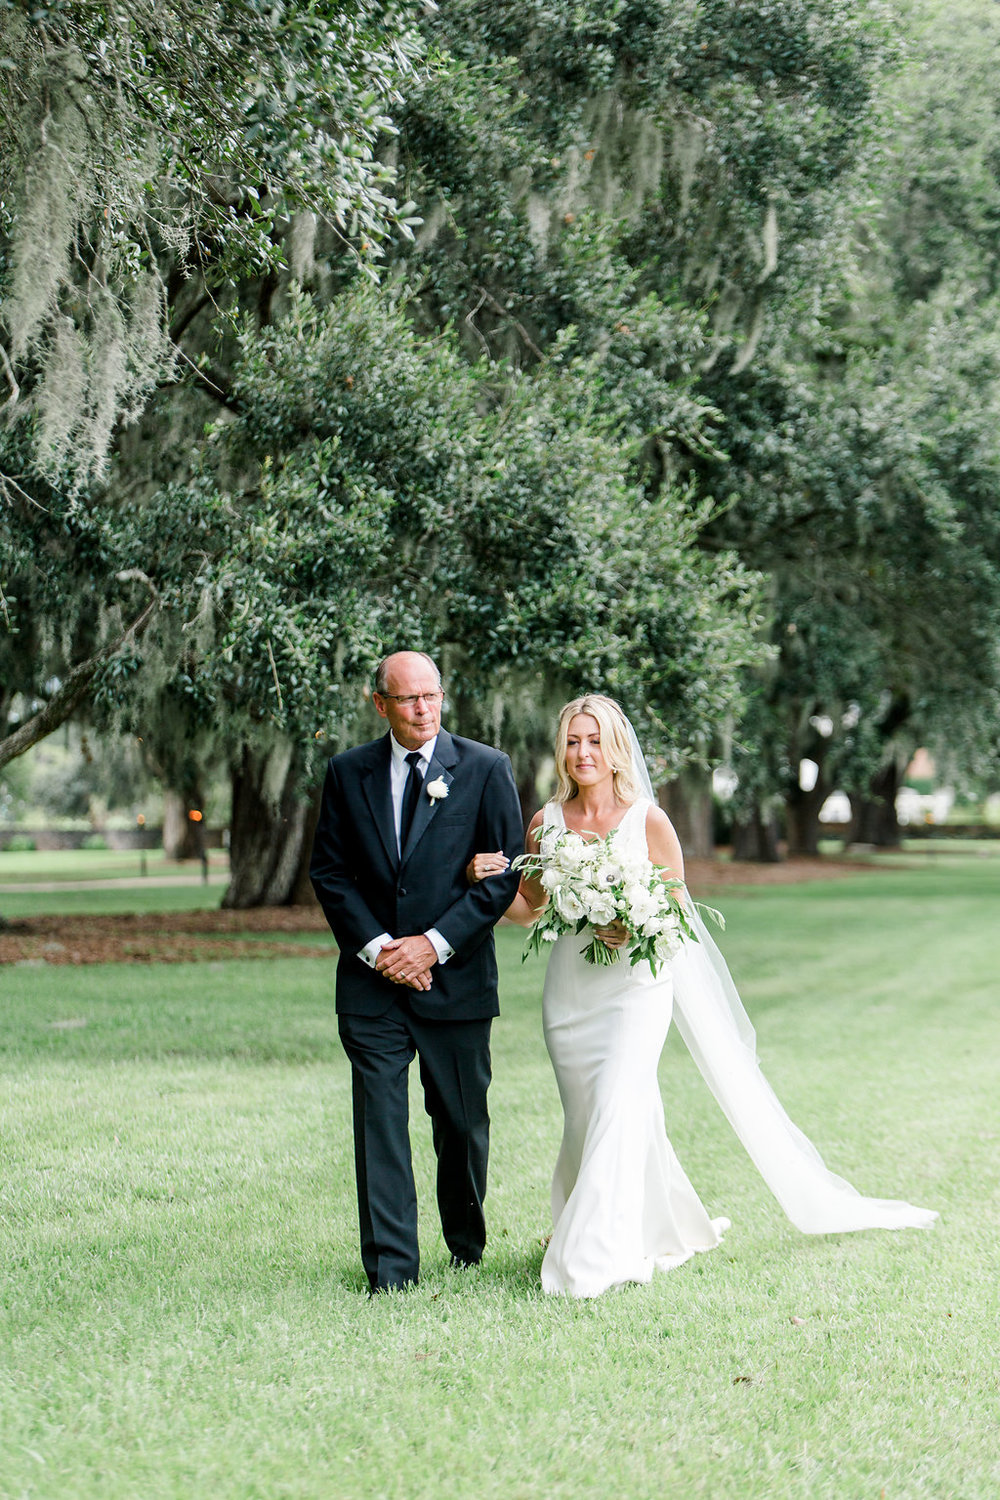 Tara & Jeremy | Boonehall Plantation Wedding, Charleston, South Carolina — Shauna Veasey | Charleston Fine Art Film Wedding Photographer